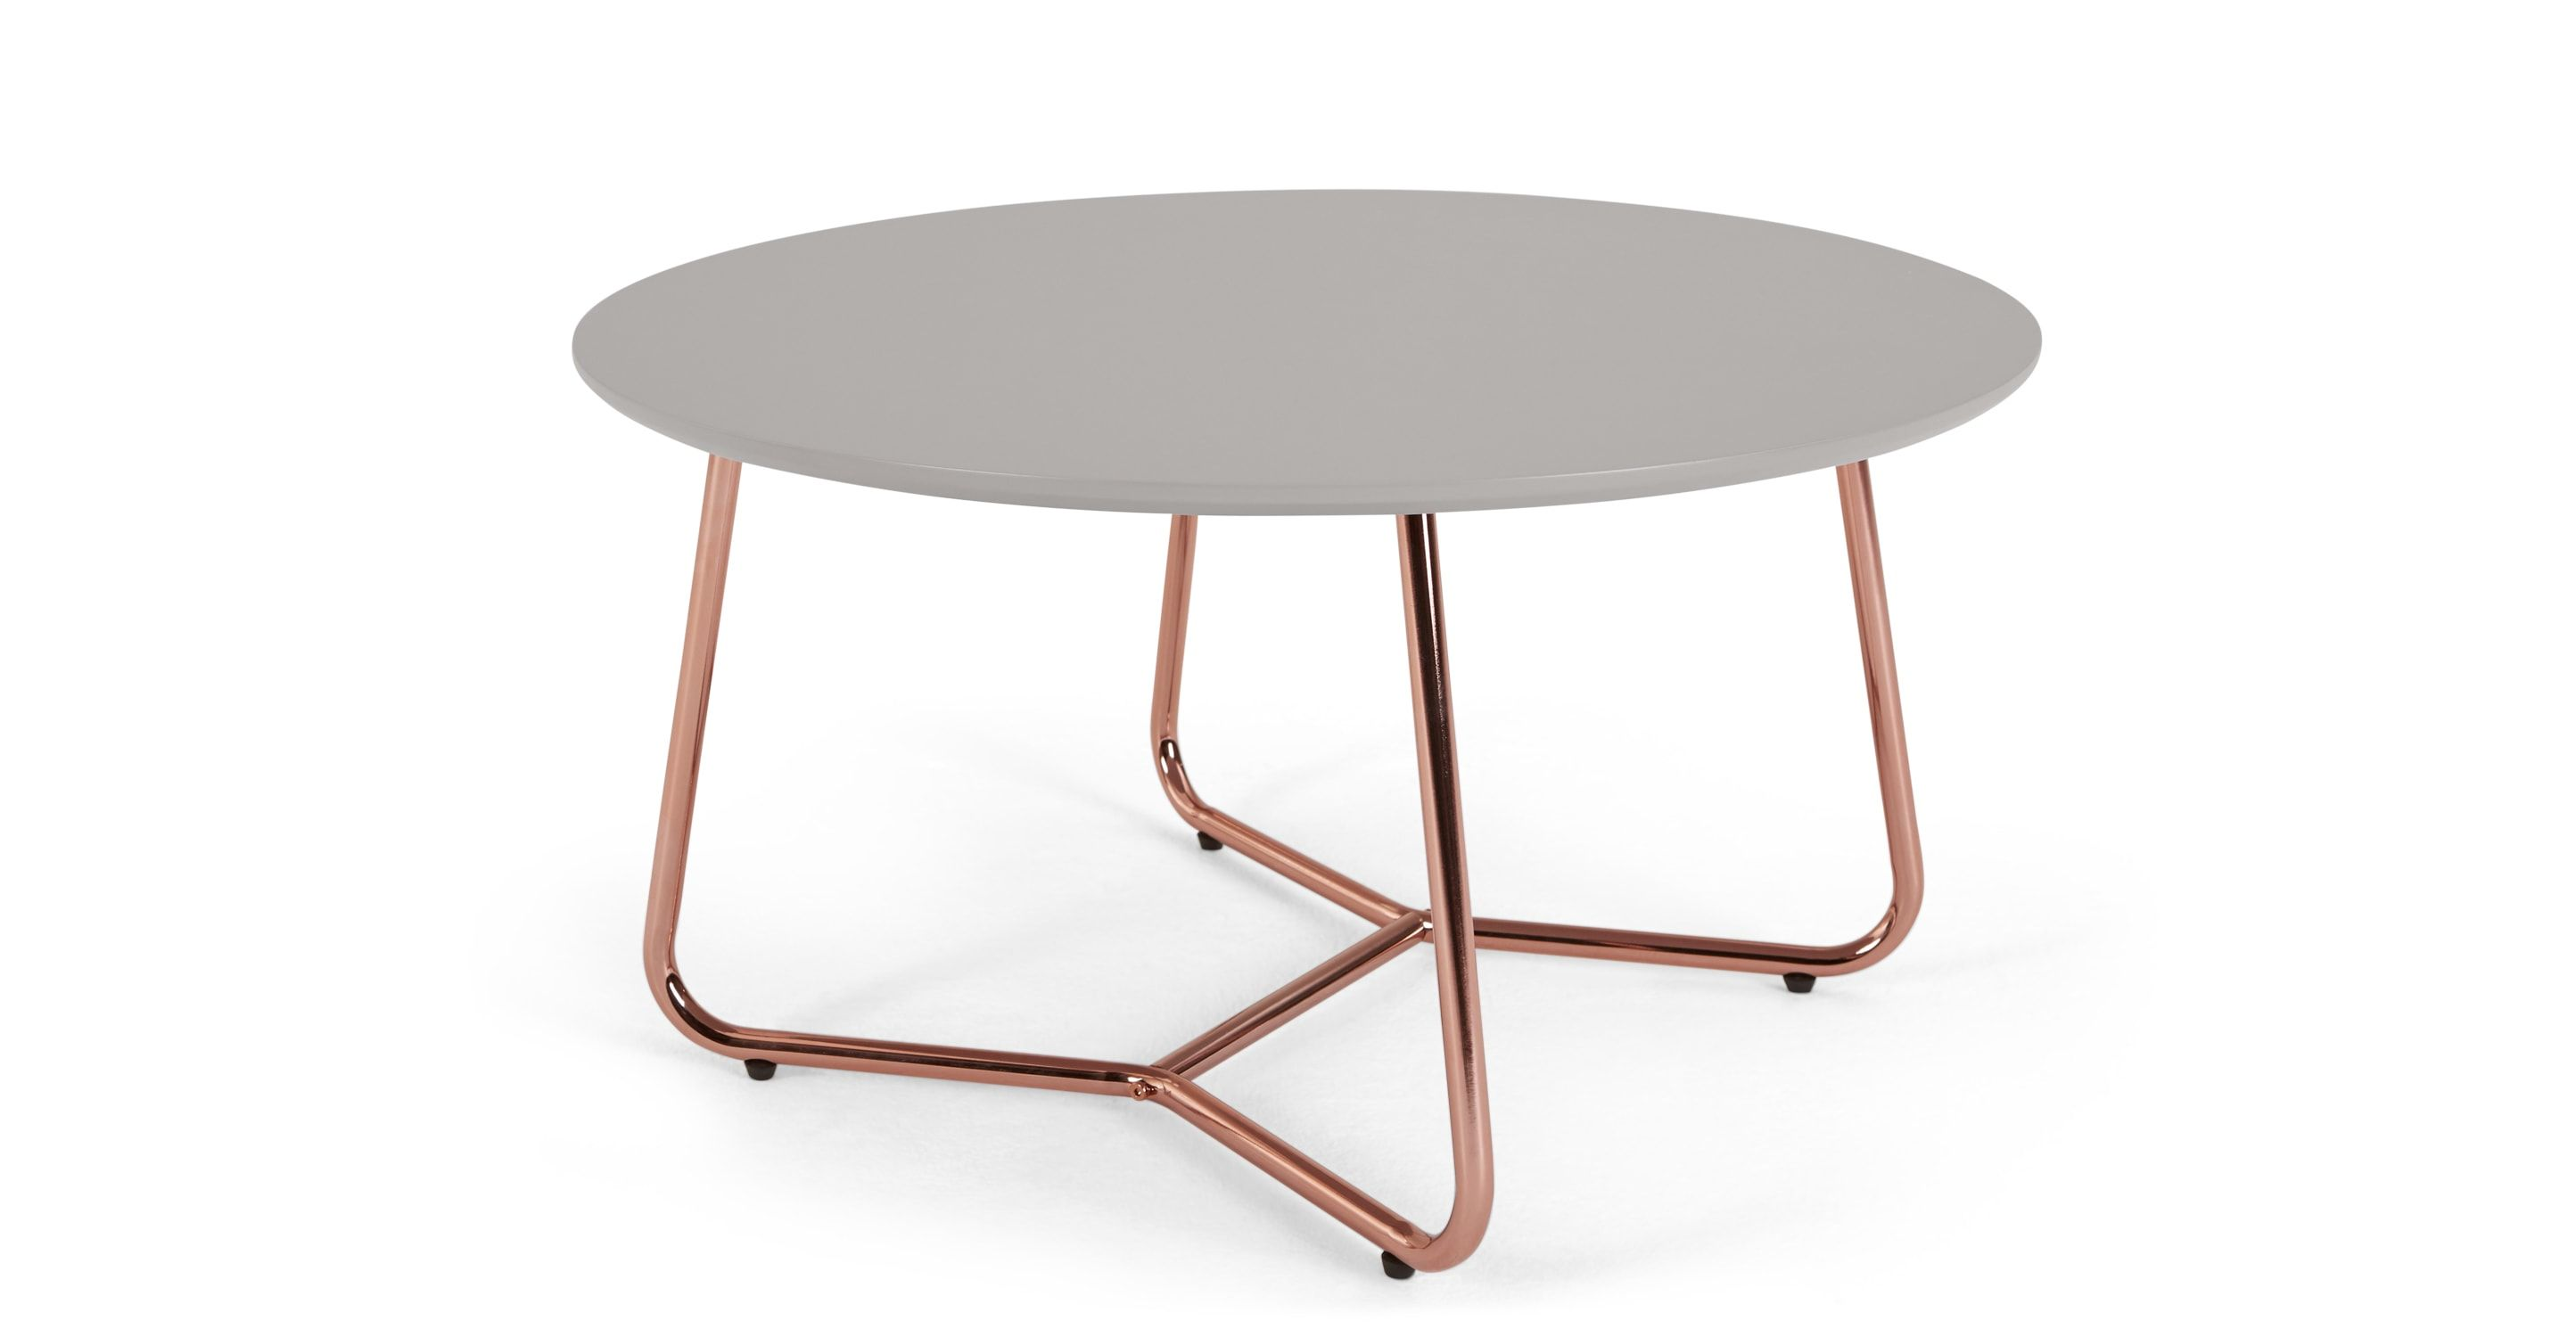 Nyla Coffee Table Grey And Copper Contemporary Coffee Table Cool Coffee Tables Modern Coffee Tables